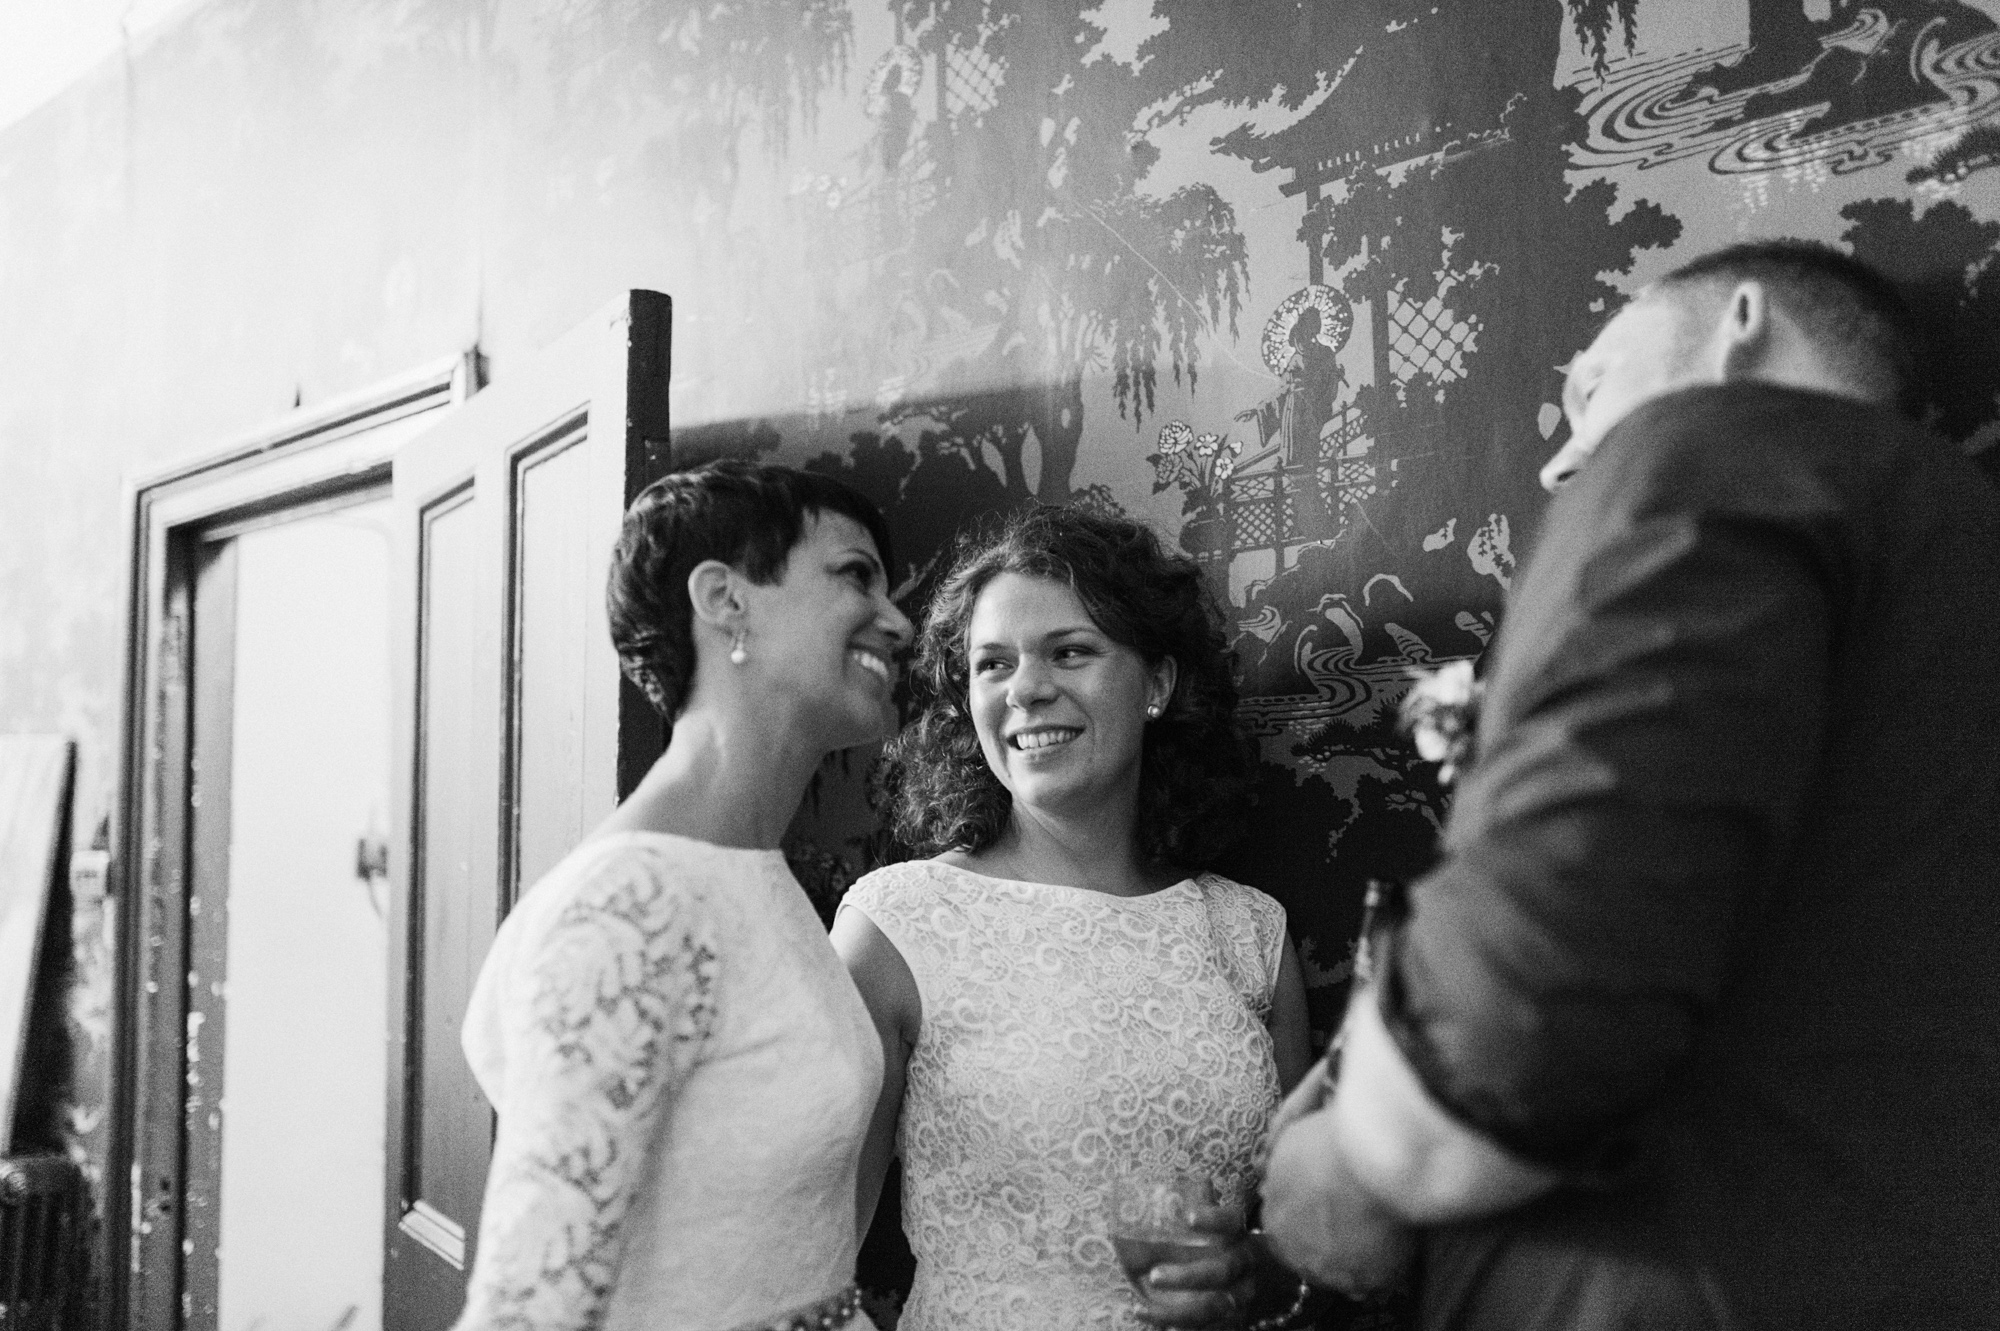 Lace wedding dress for lesbian brides - London gay wedding photographer The Roost Dalston London wedding photographer © Babb Photo